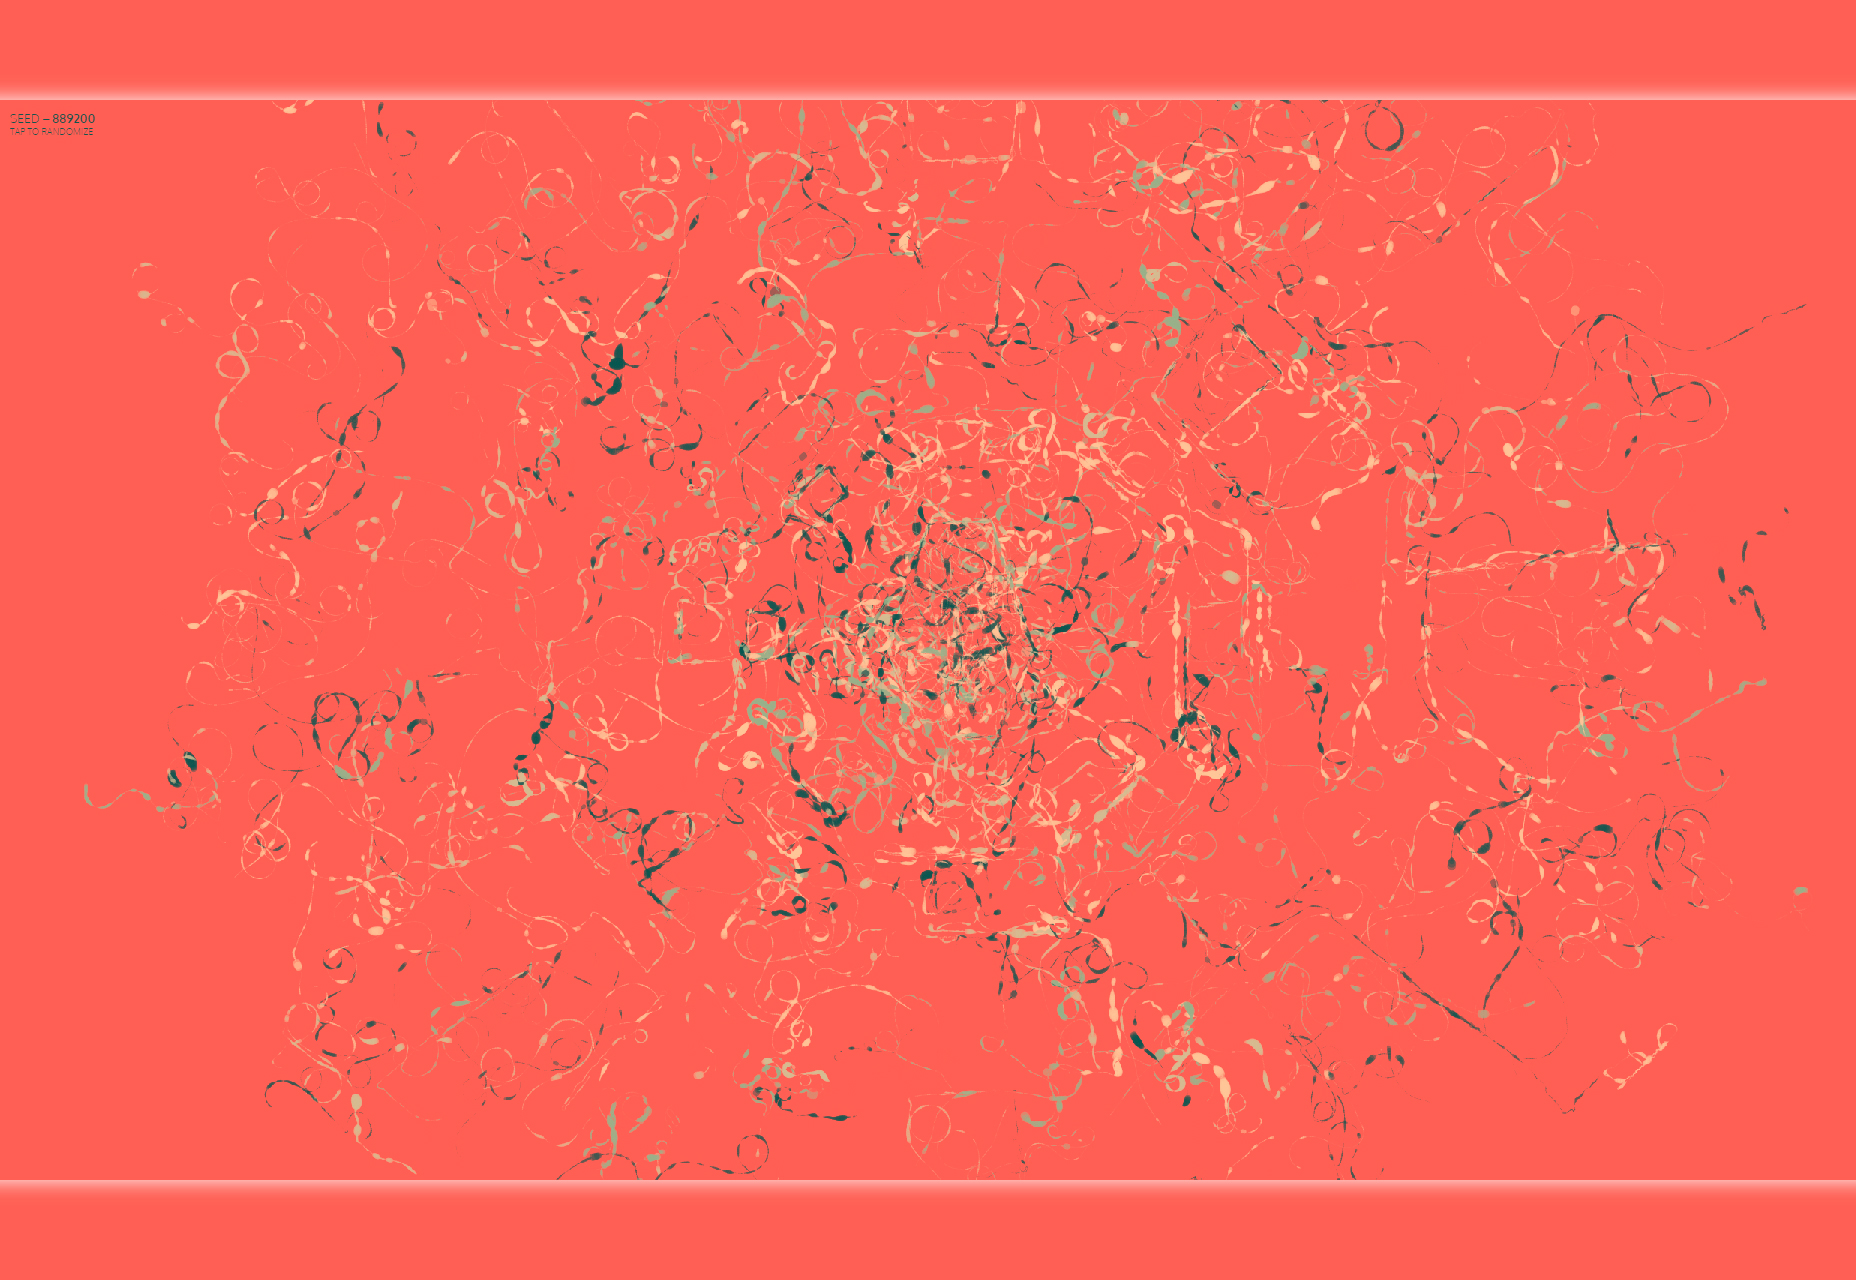 Color-wander: Seeded Random Based Generative Artwork in Node/Browser